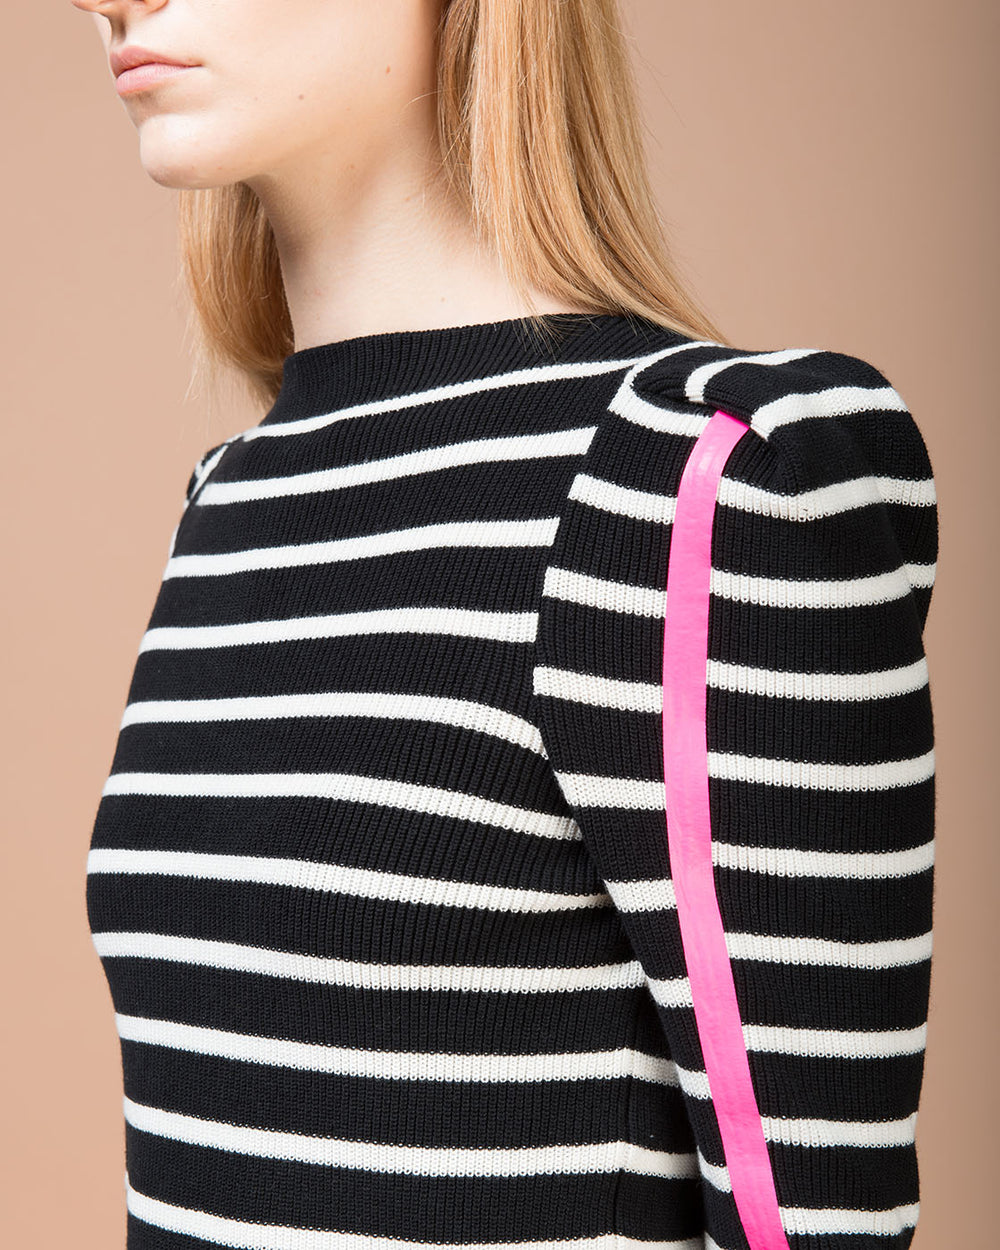 Black & White Striped Boatneck Sweater